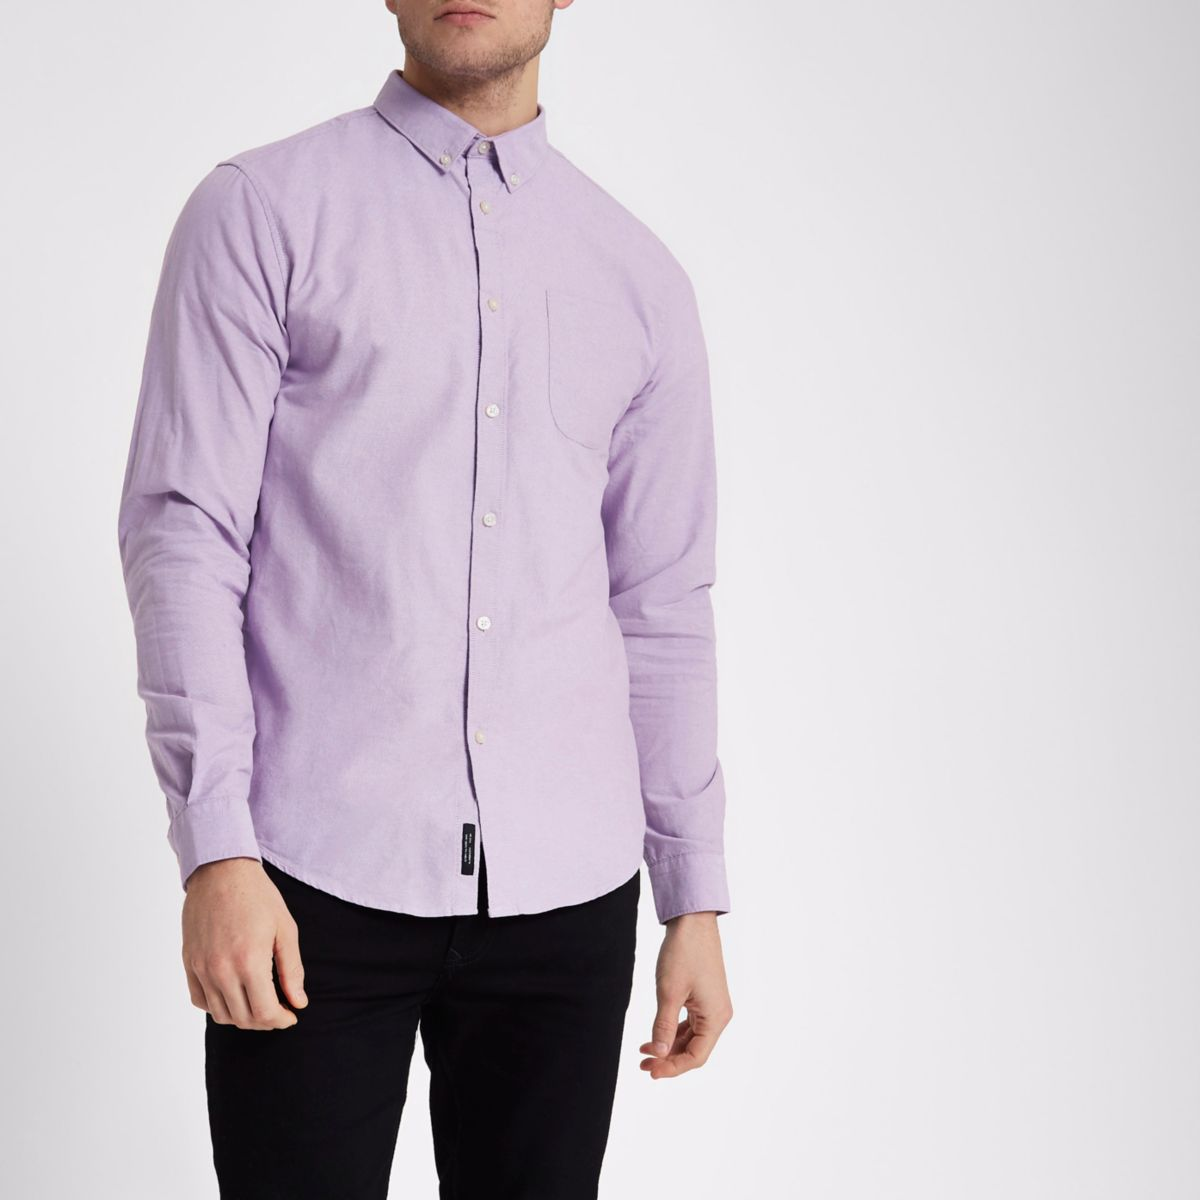 Lilac purple button-down Oxford shirt